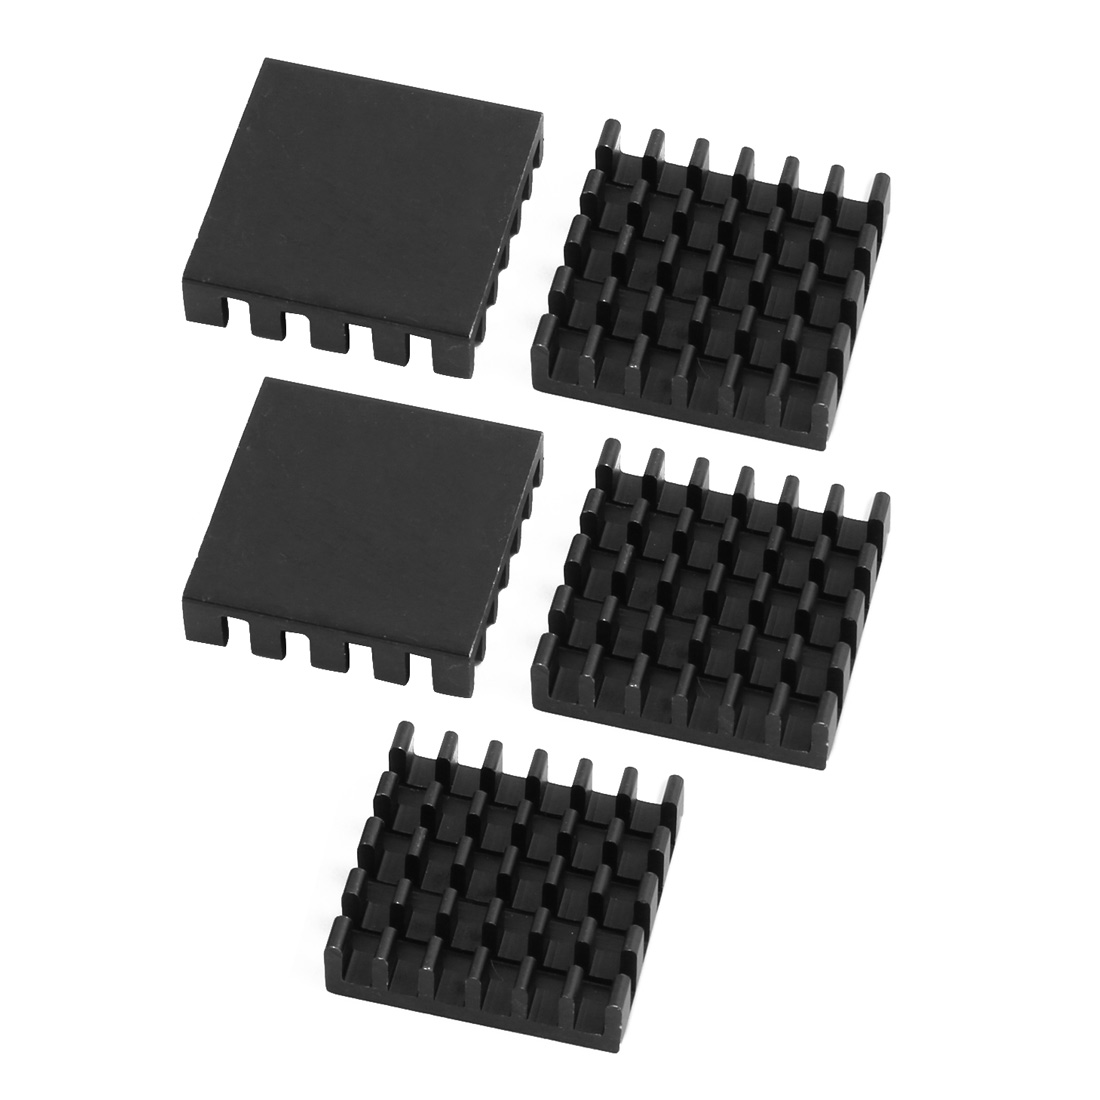 5pcs 19mmx19mmx5mm Black Aluminum Heatsink Heat Diffuse Cooling Fin